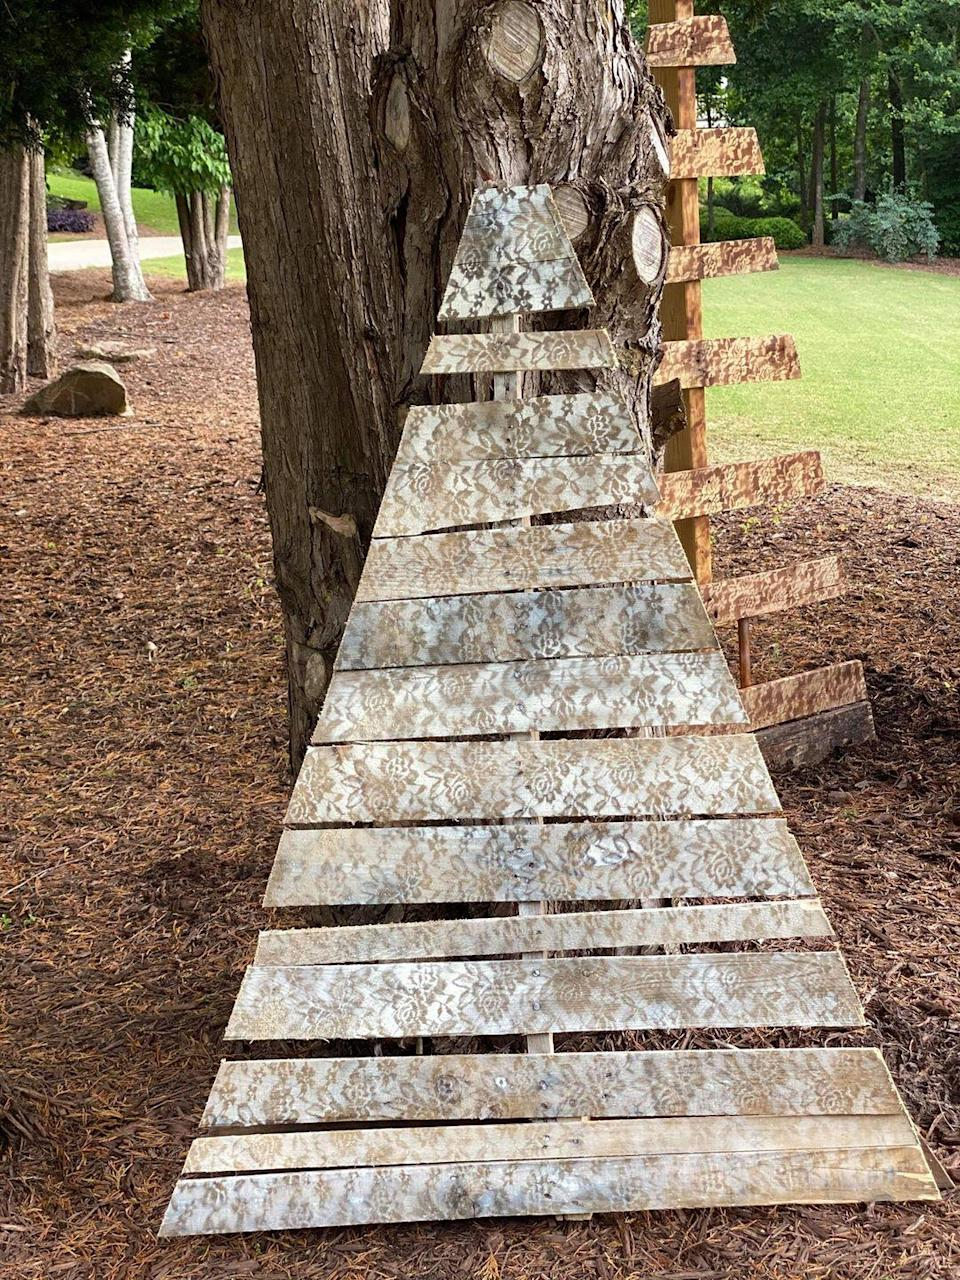 """<p>Believe it or not, all you need to create a lace look on your pallet tree is lace fabric and a can of spray paint. Lay the lace on your tree, paint over it, and presto! When you pull off the fabric you'll have a lace pattern left on your tree.</p><p><strong>Get the tutorial at <a href=""""https://theshabbytree.com/diy-pallet-tree/"""" rel=""""nofollow noopener"""" target=""""_blank"""" data-ylk=""""slk:The Shabby Tree"""" class=""""link rapid-noclick-resp"""">The Shabby Tree</a>.</strong></p><p><a class=""""link rapid-noclick-resp"""" href=""""https://www.amazon.com/Lace-Realm-Raschel-Vintage-Decorations/dp/B09312RMJZ/ref=sr_1_56_sspa?tag=syn-yahoo-20&ascsubtag=%5Bartid%7C10050.g.23322271%5Bsrc%7Cyahoo-us"""" rel=""""nofollow noopener"""" target=""""_blank"""" data-ylk=""""slk:SHOP LACE"""">SHOP LACE</a><br></p>"""